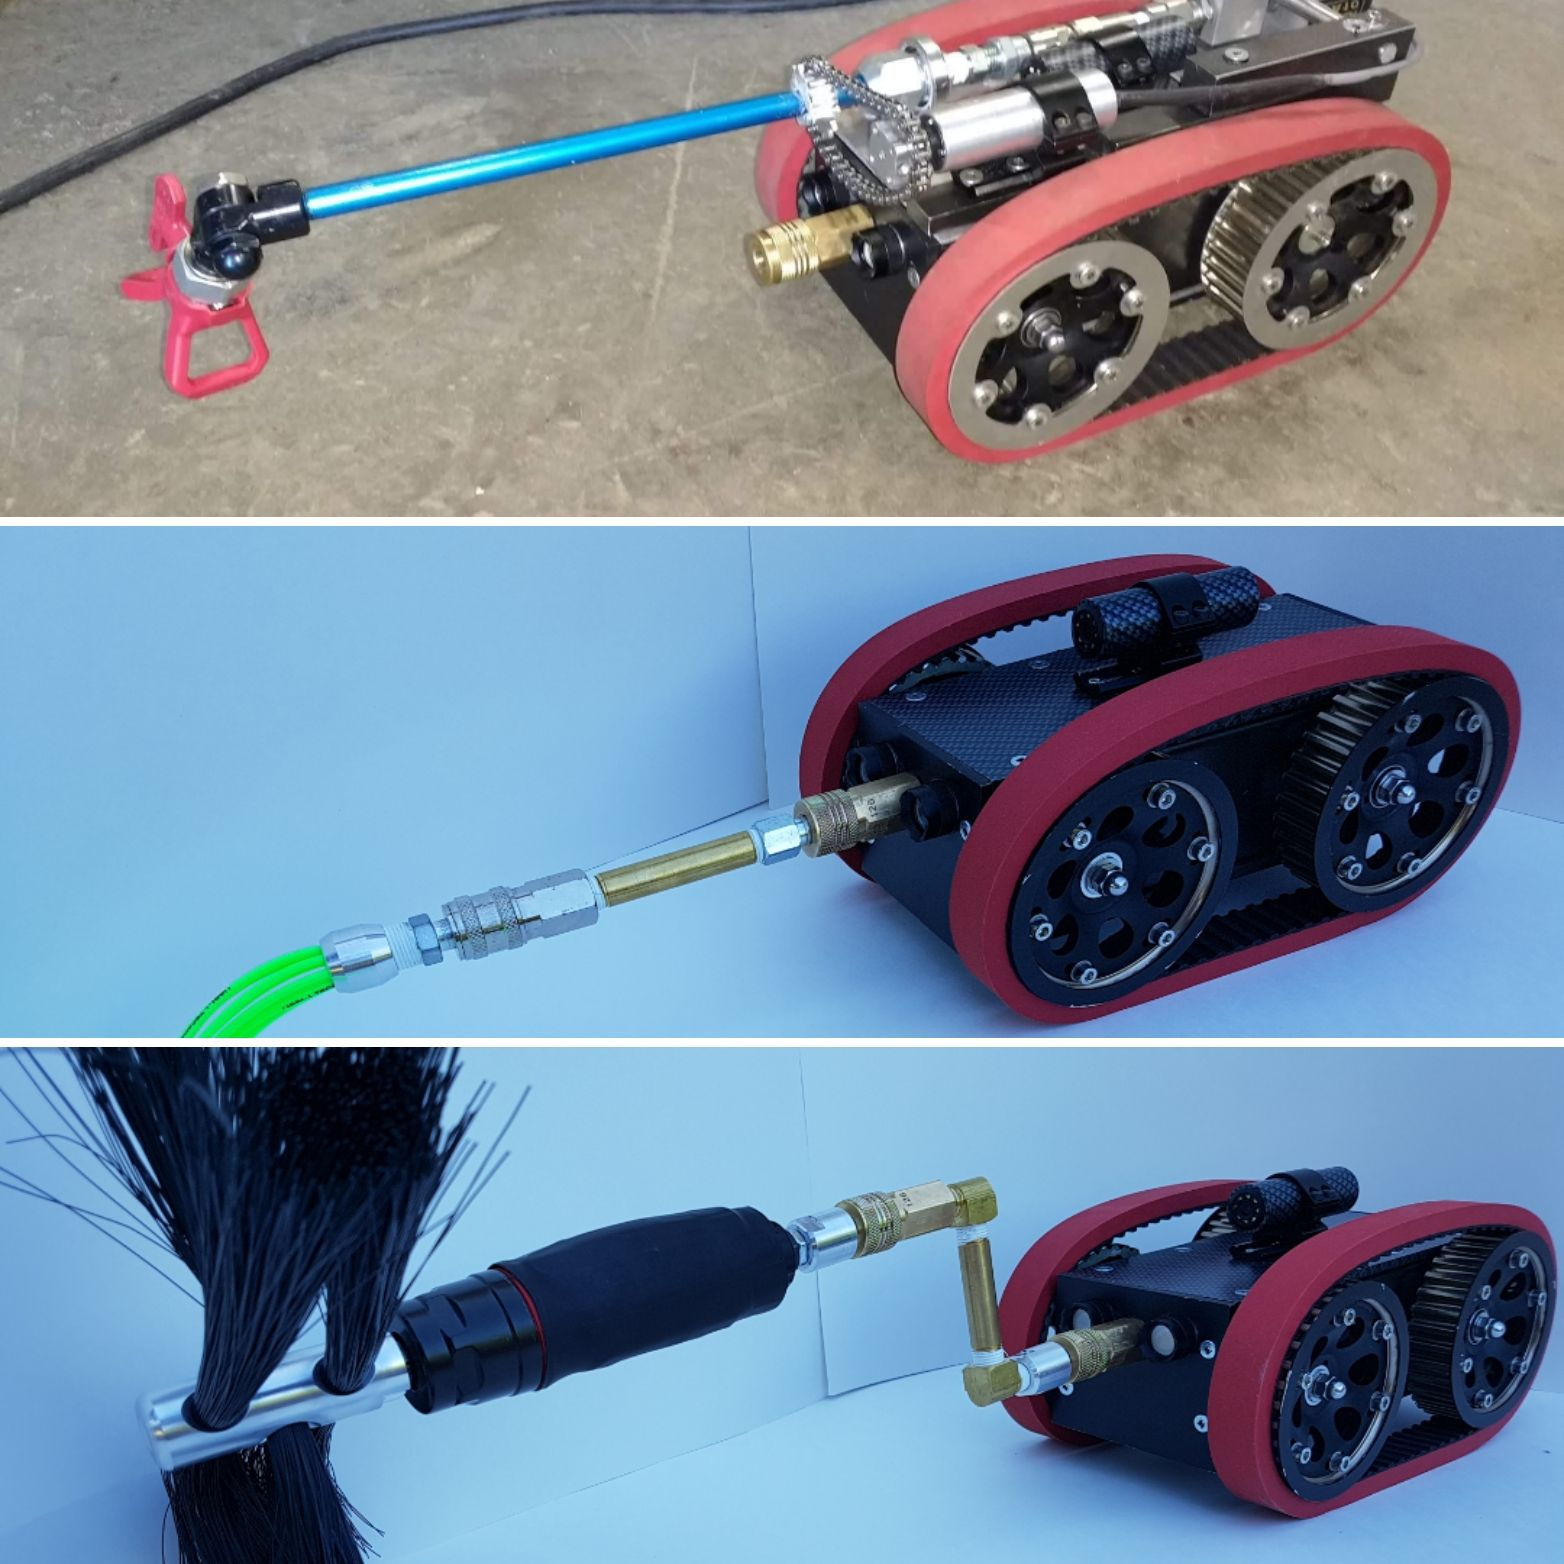 Airbot One Robot specialized for air duct cleaning and